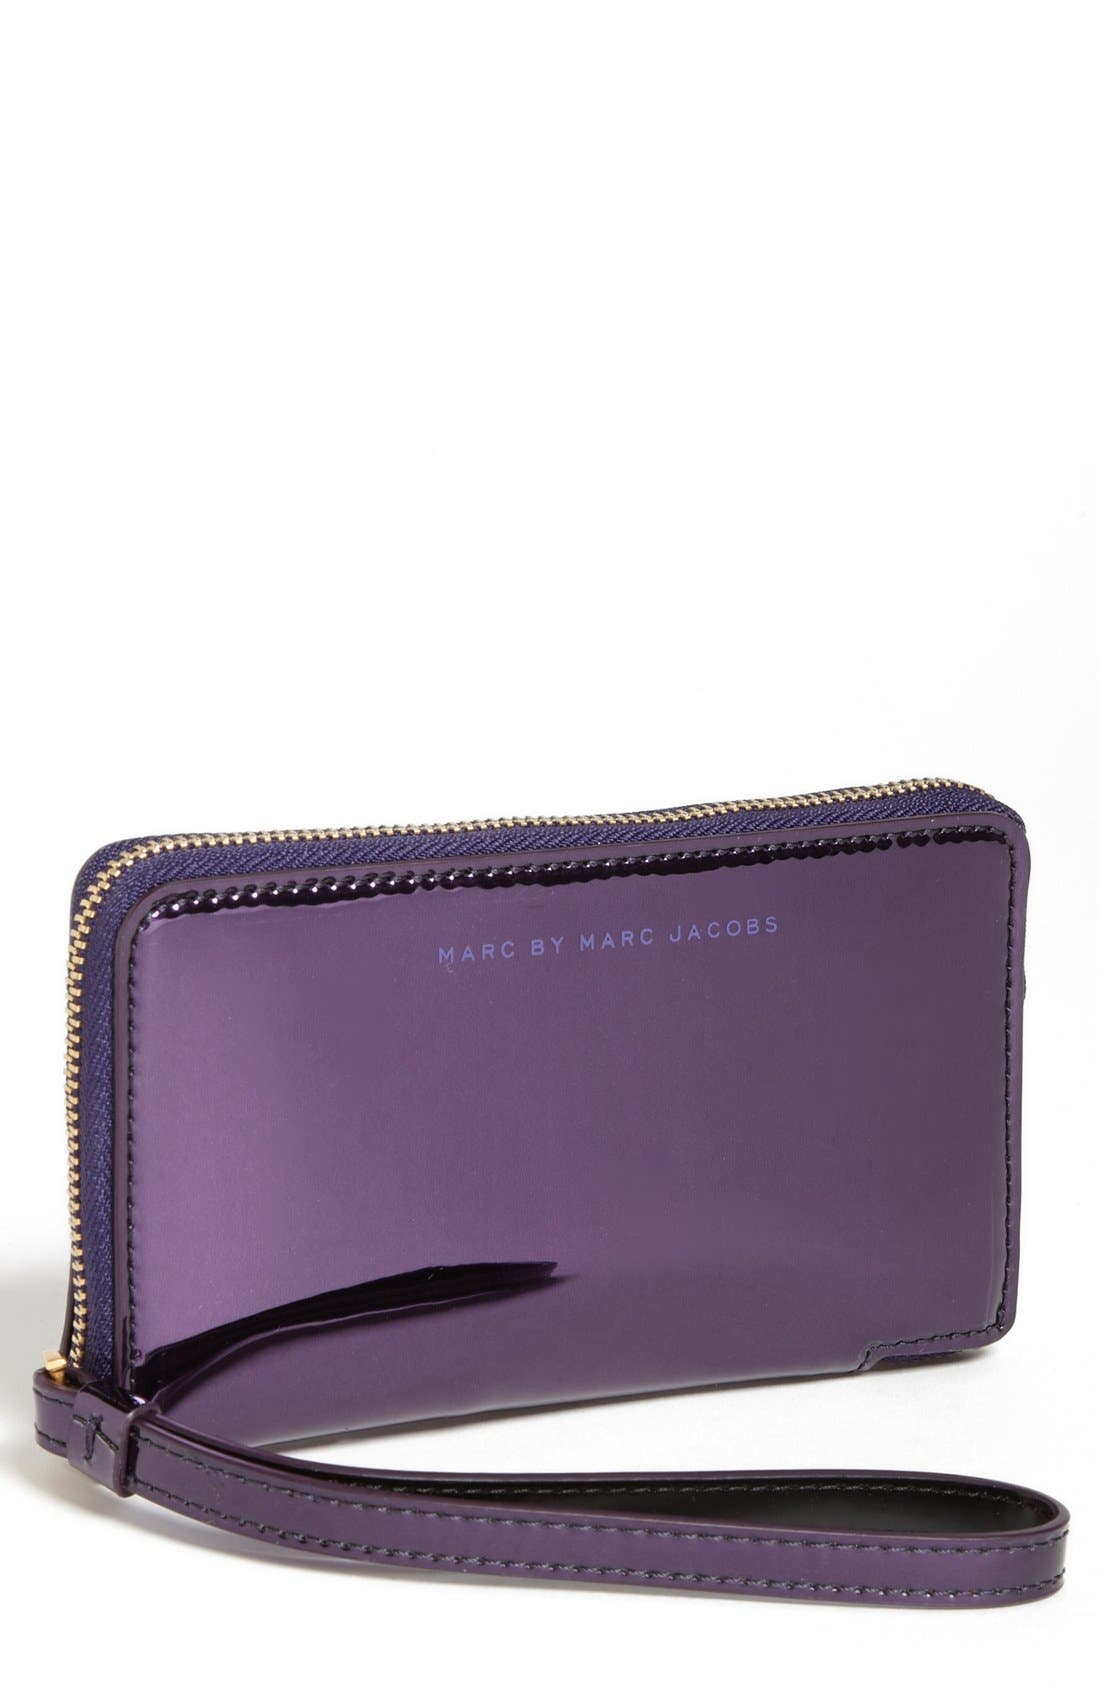 Alternate Image 1 Selected - MARC BY MARC JACOBS 'Techno - Wingman' iPhone Wristlet